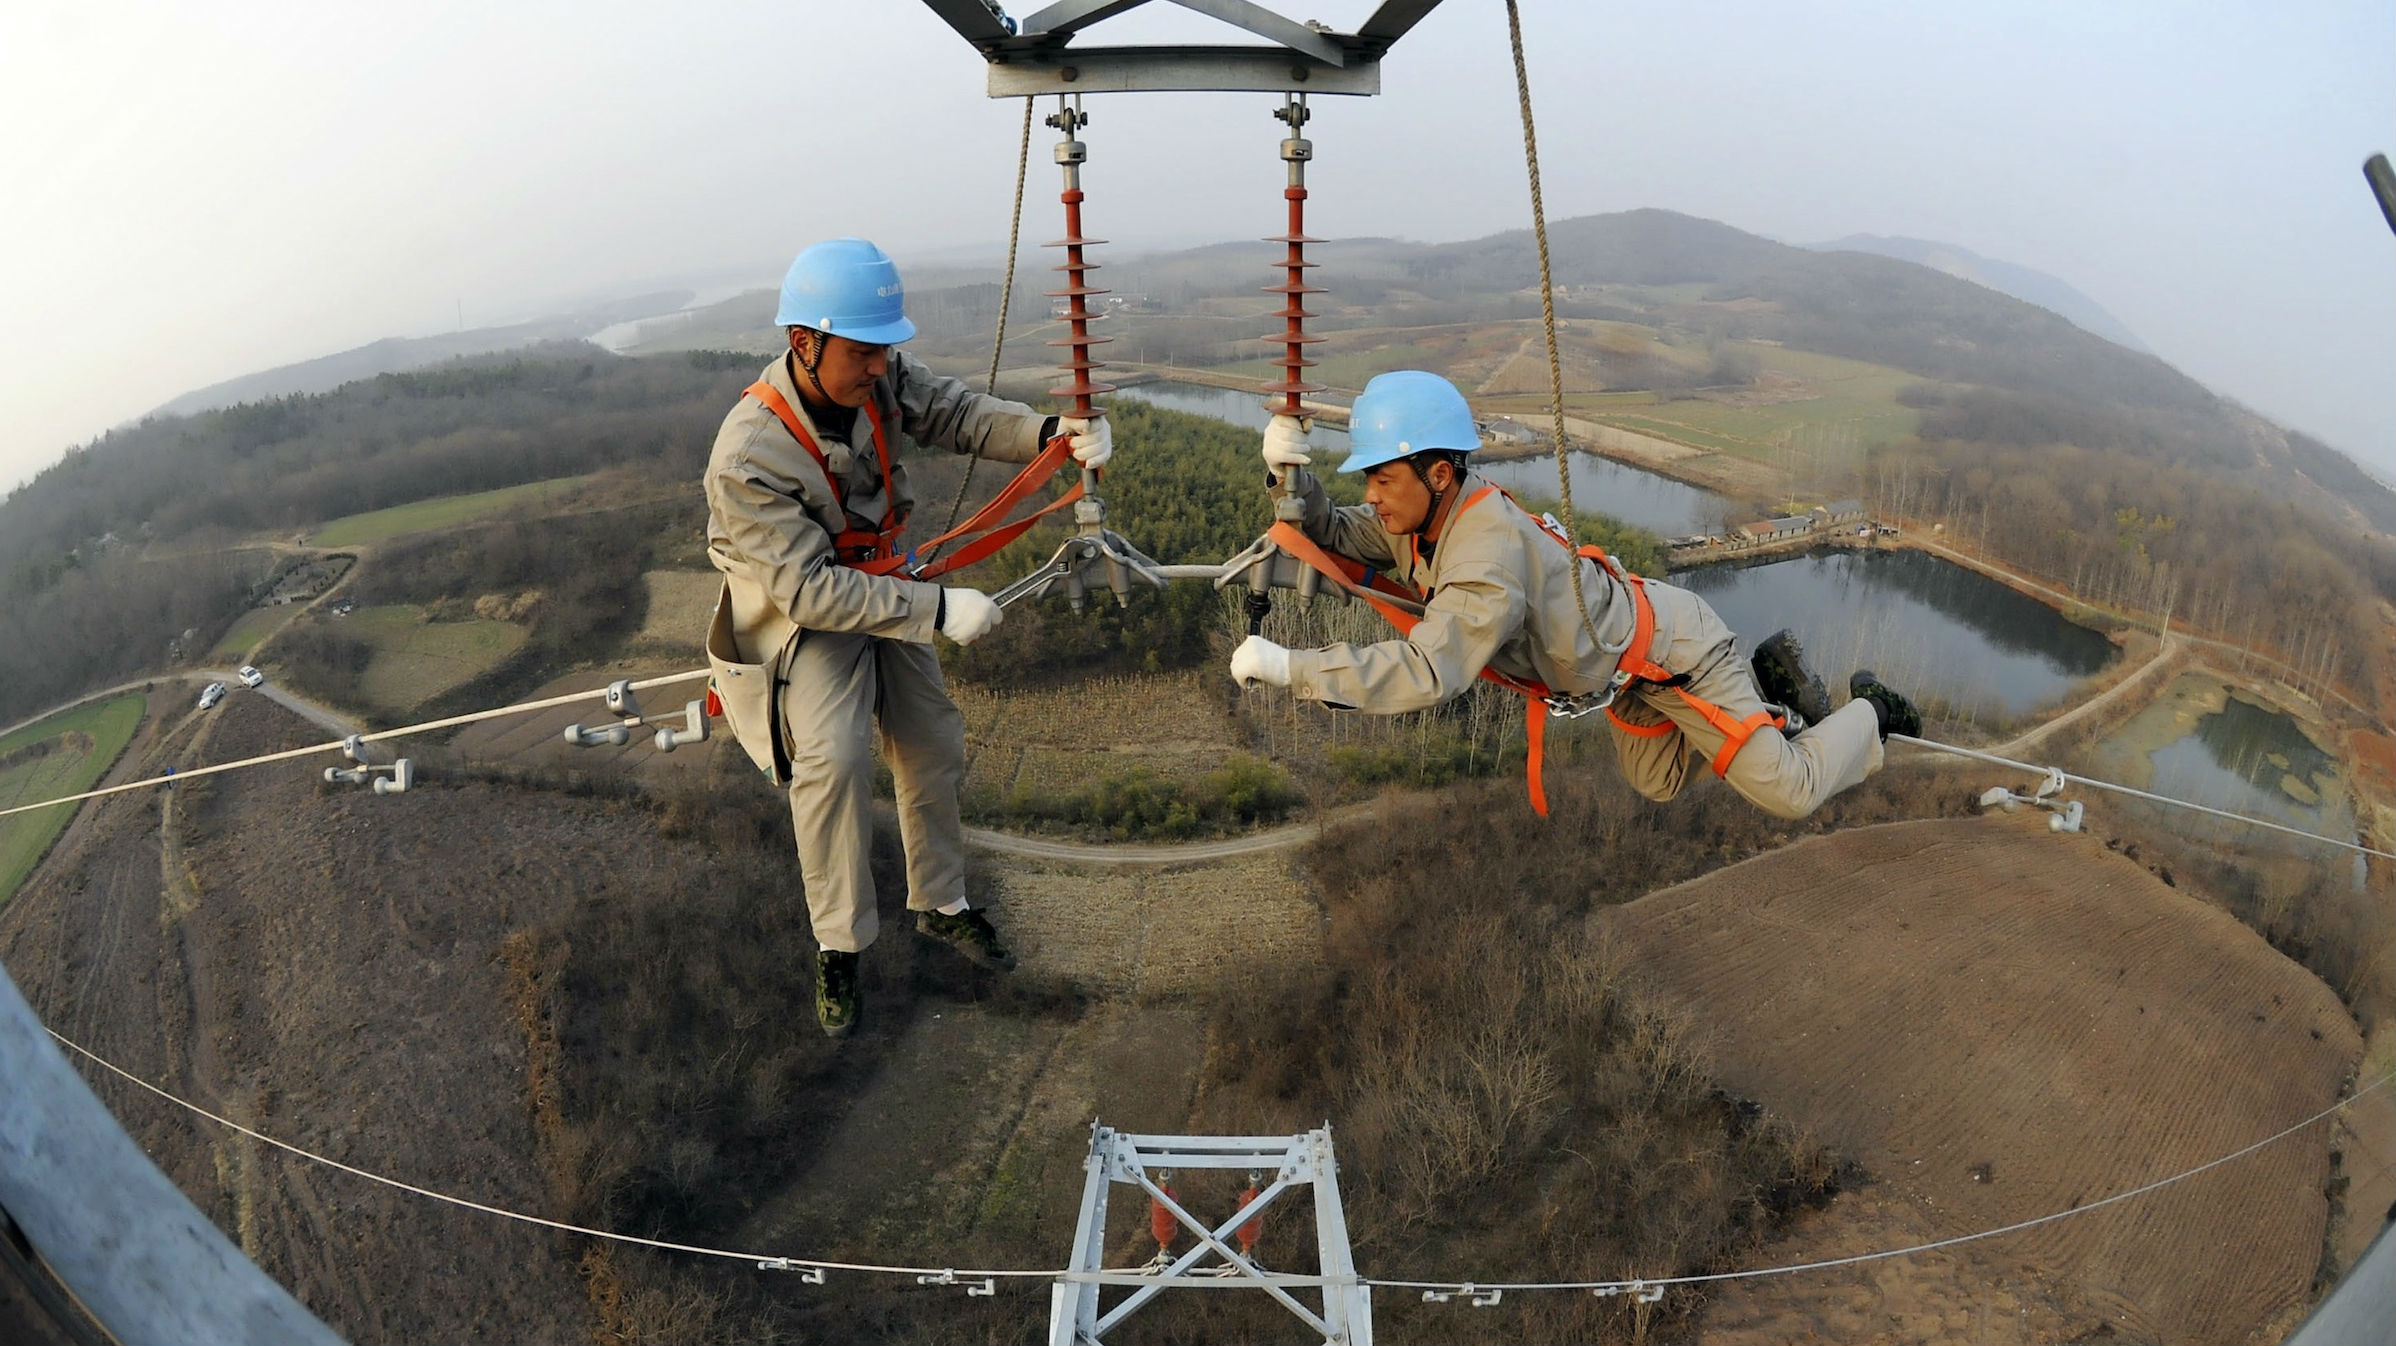 Workers check on electricity pylon situated amid farmlands in Chuzhou, Anhui province.